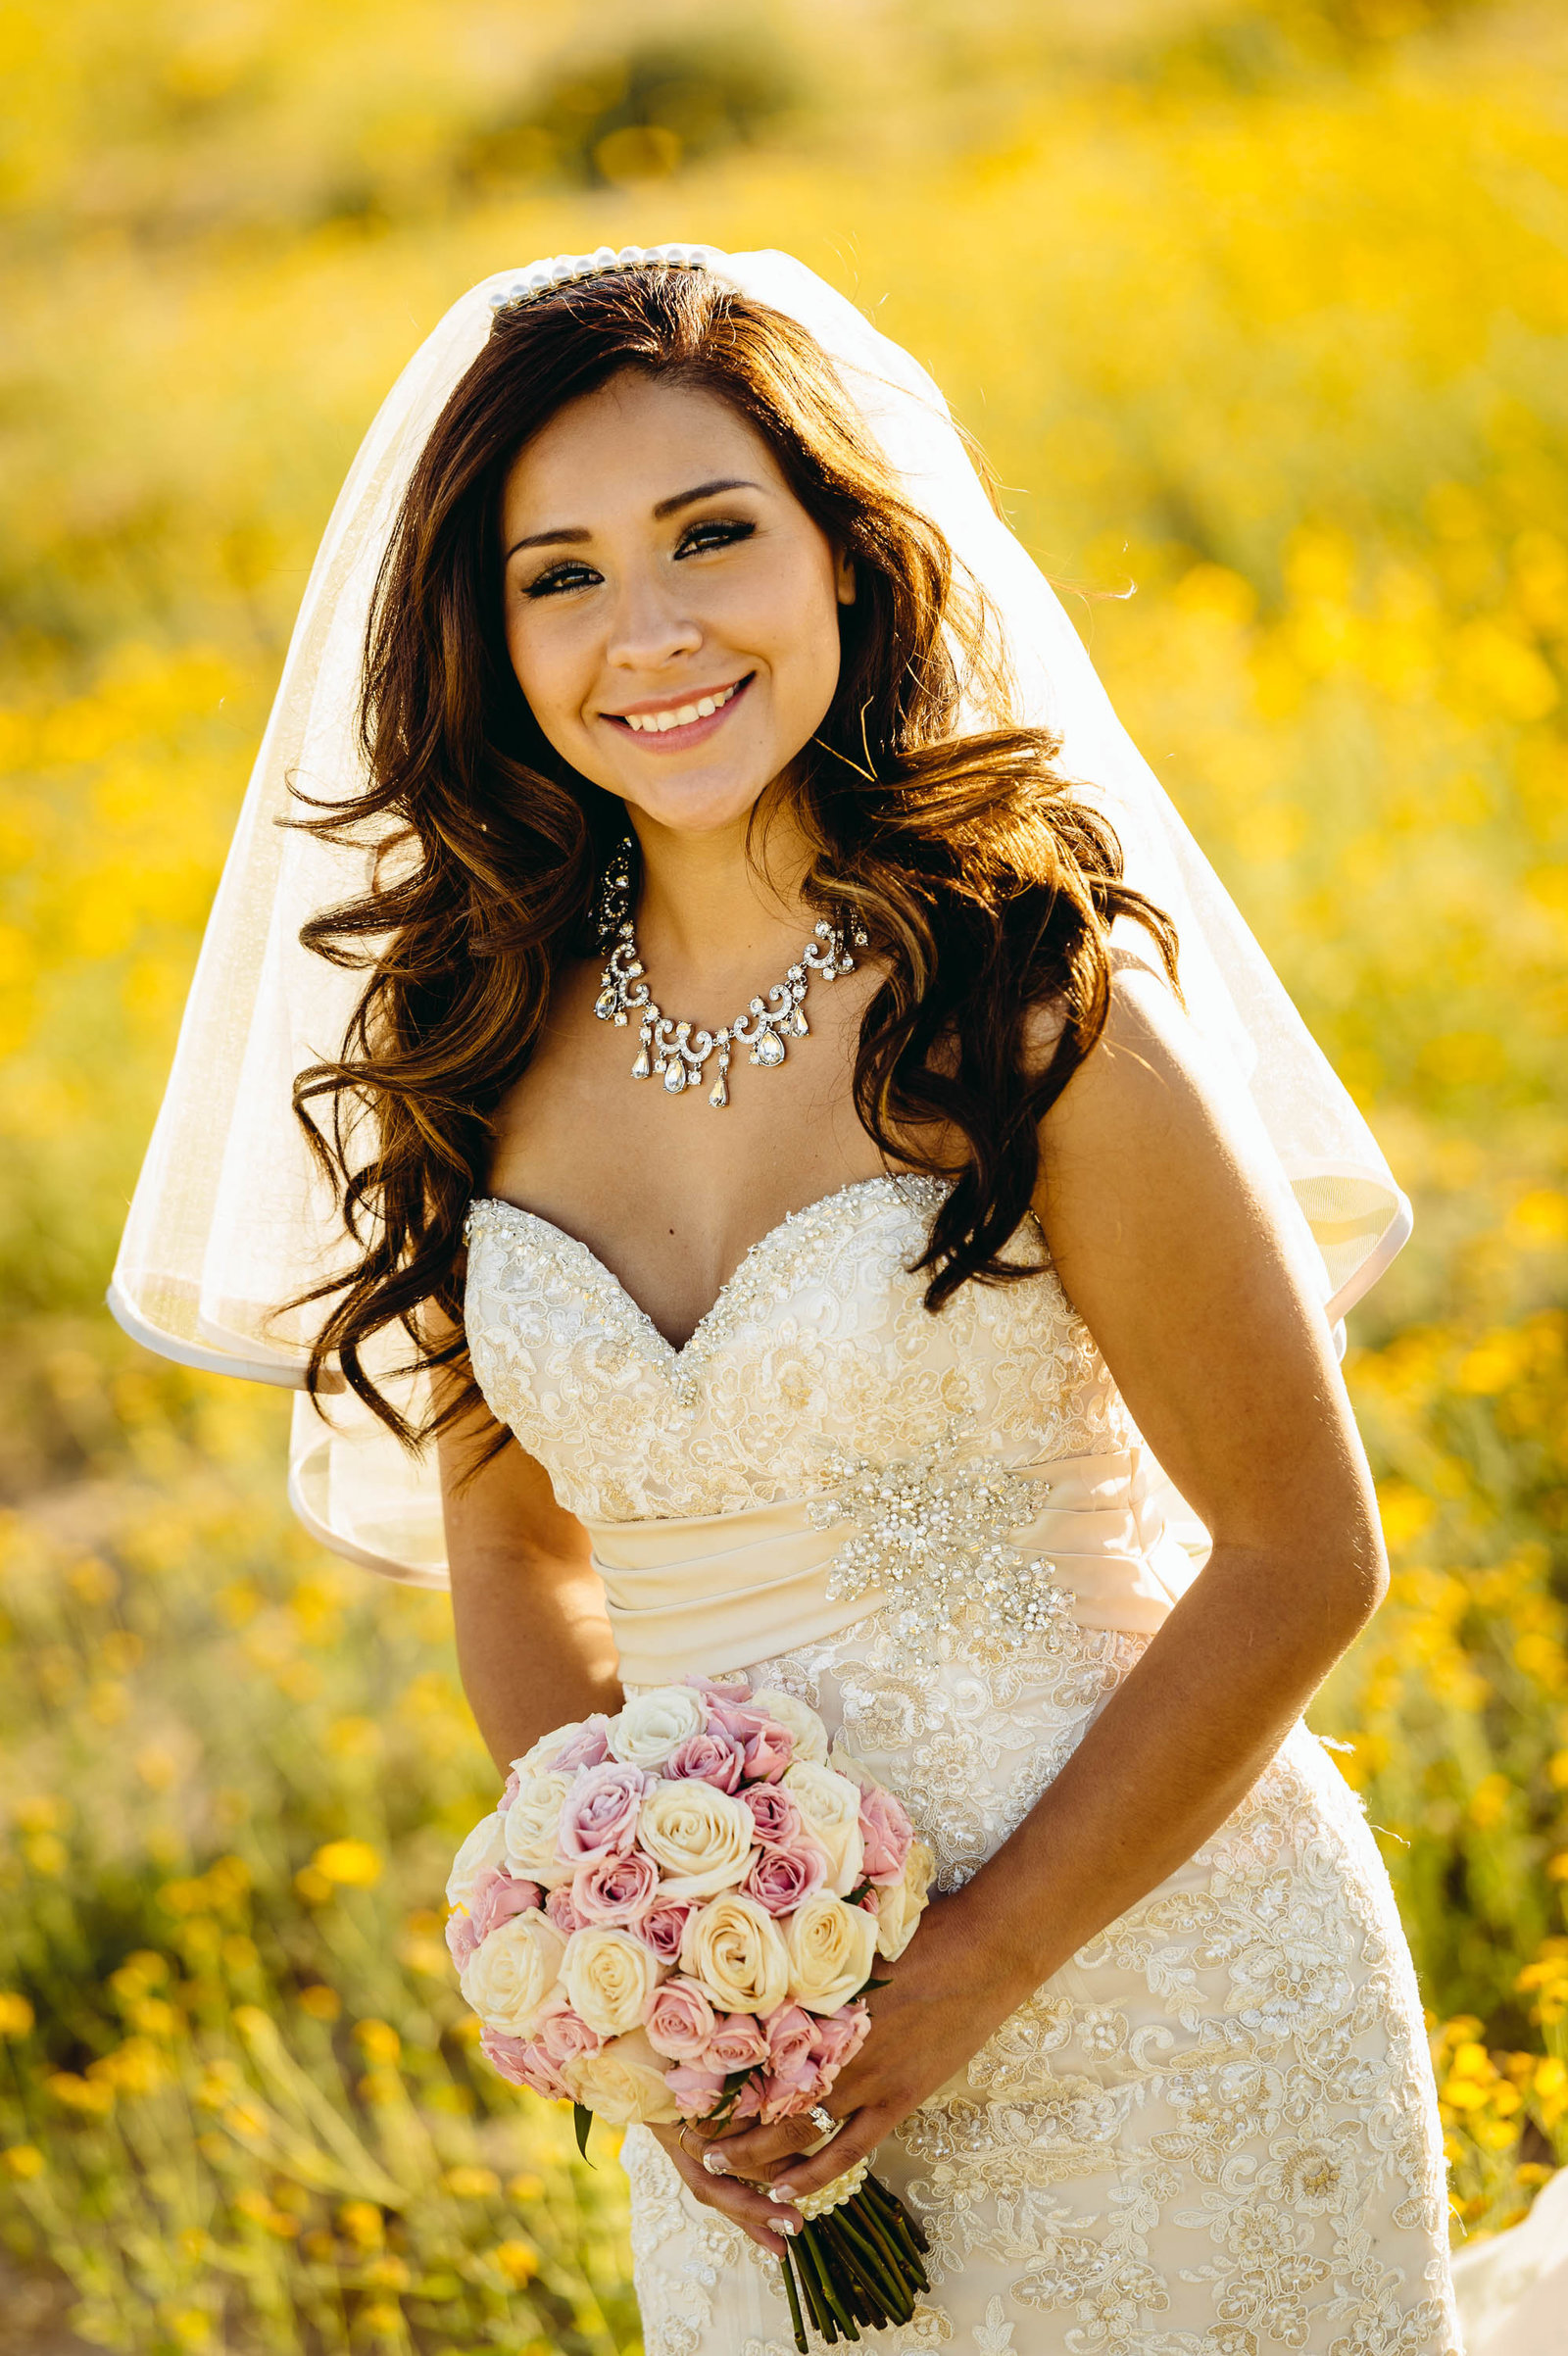 294-El-paso-wedding-photographer-El Paso Wedding Photographer_B10